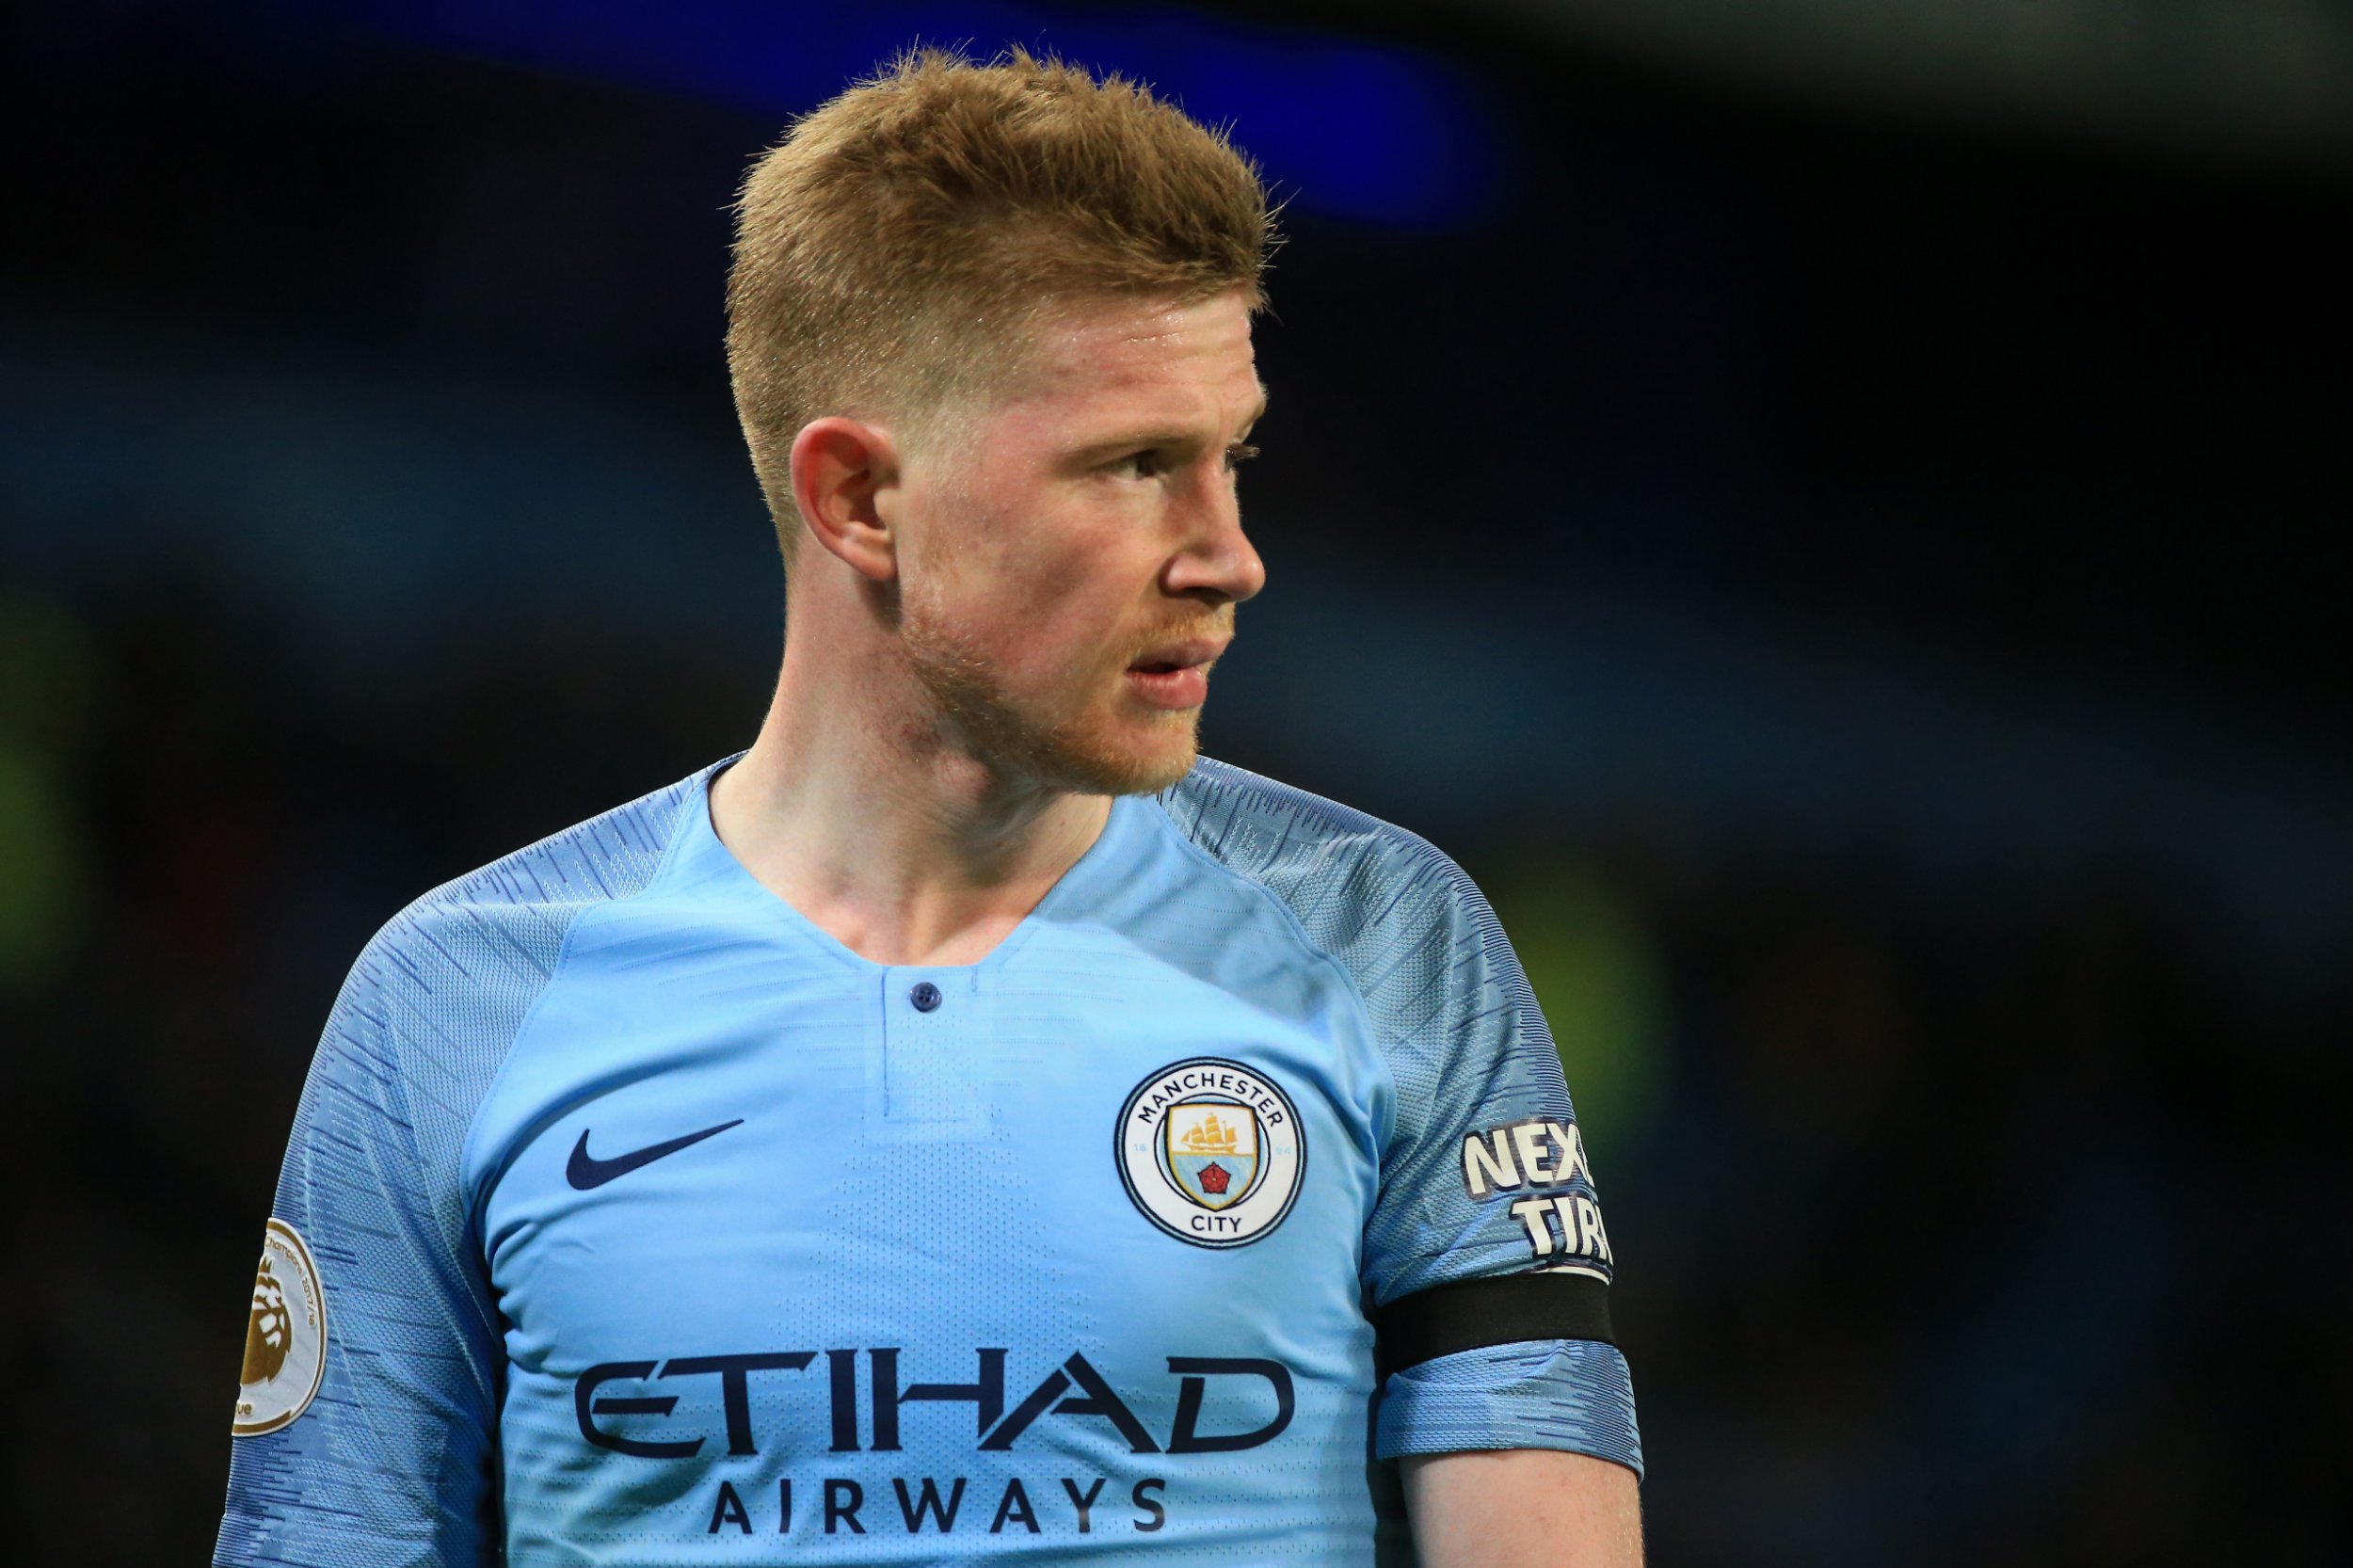 Kevin De Bruyne of Manchester City looks on during the Premier League match between Manchester City and Cardiff City at Etihad Stadium on April 03, 2019 in Manchester, United Kingdom. (Photo by Tom Flathers/Man City via Getty Images)